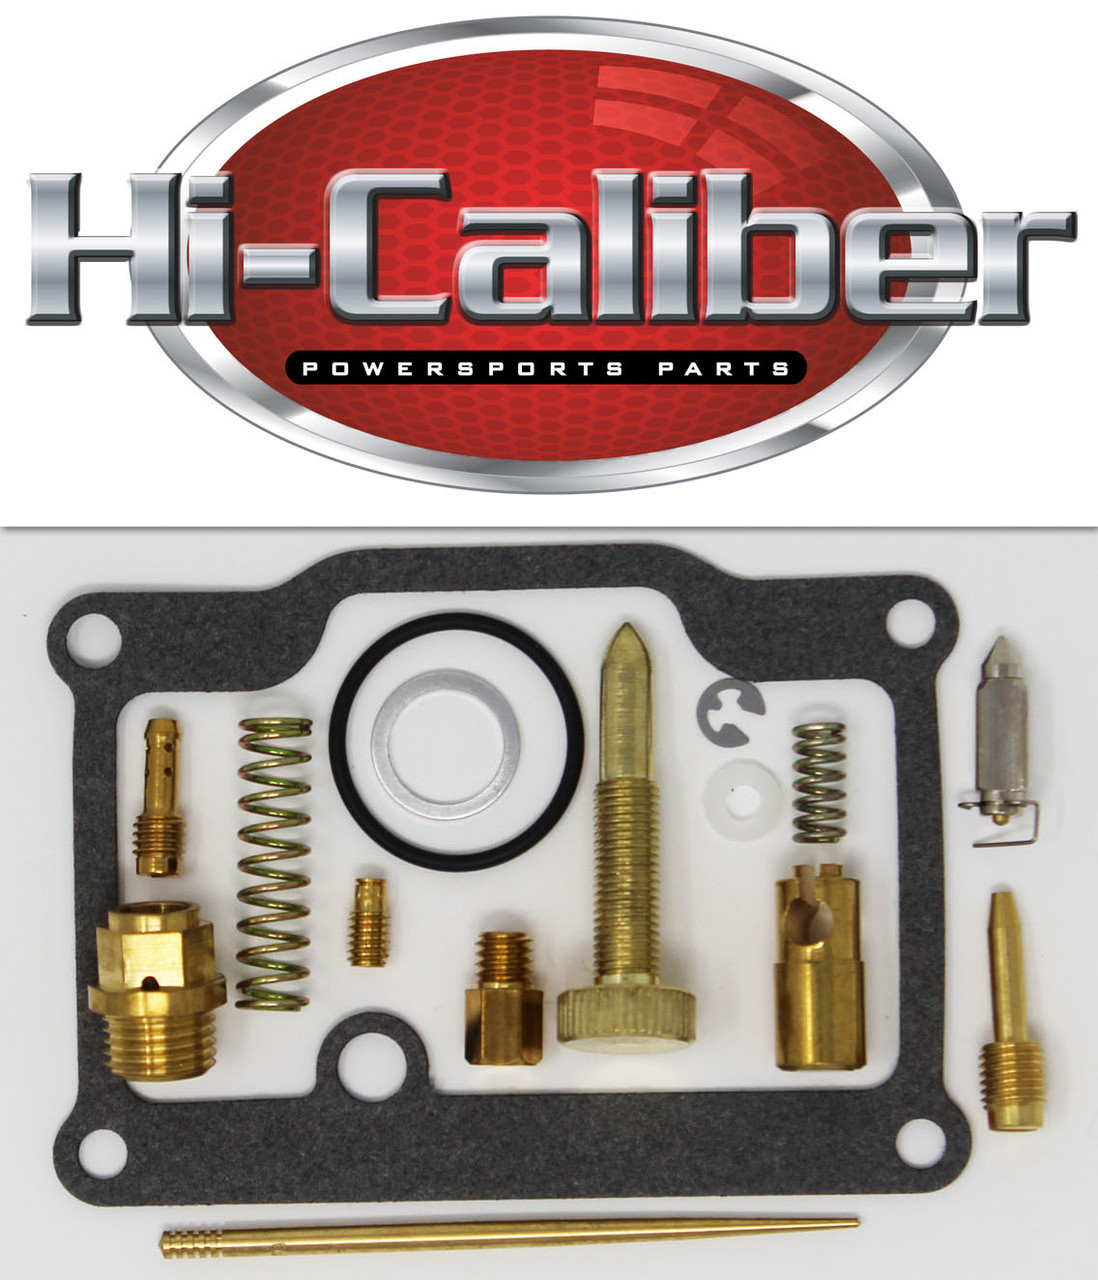 1993 Polaris 400 Sportsman 400 4x4 Carburetor Repair Kit Carb Kit